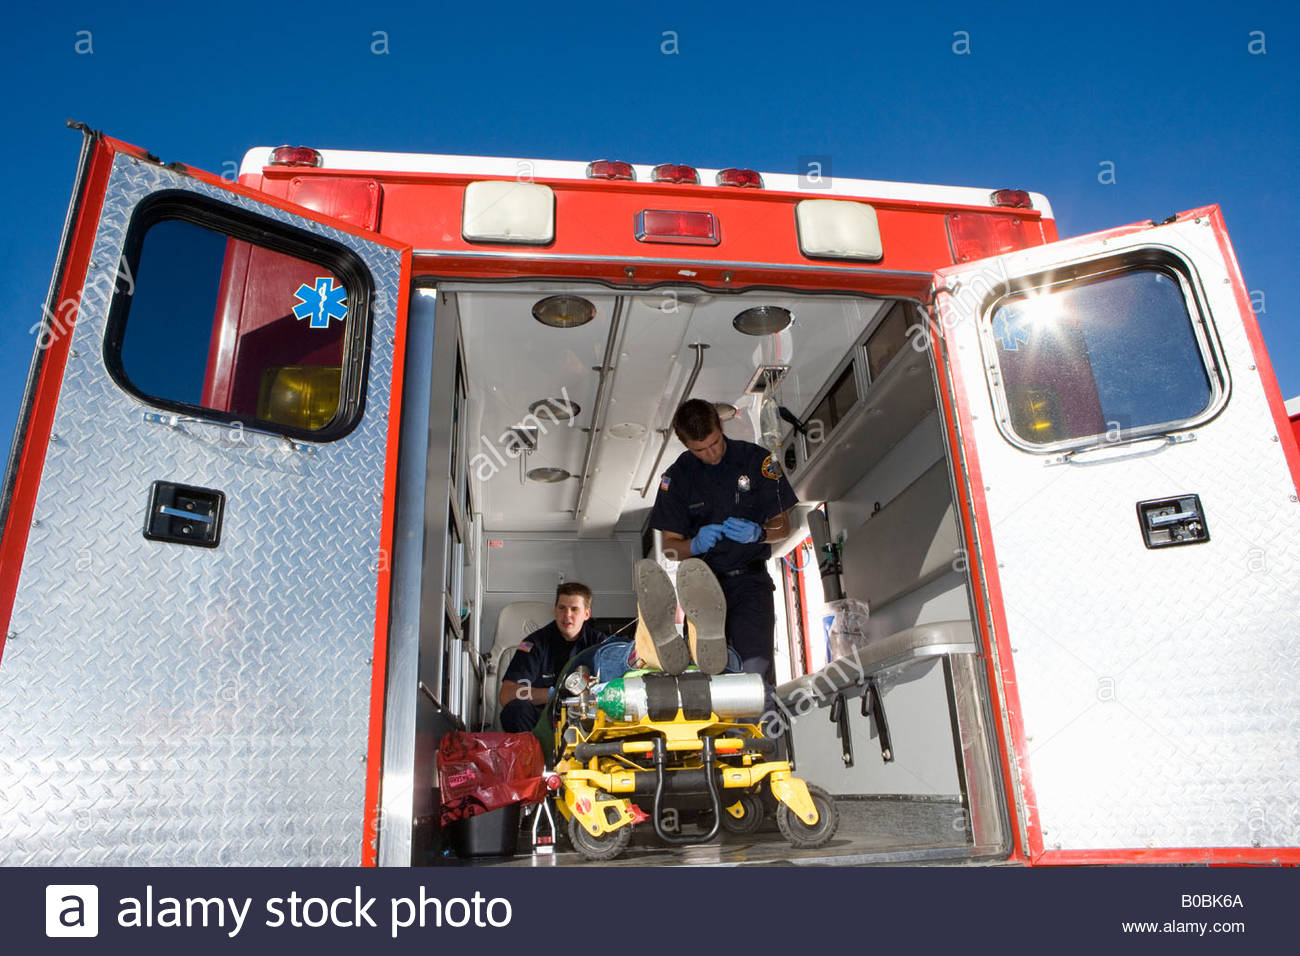 Paramedics with man on stretcher in ambulance, low angle view - Stock Image